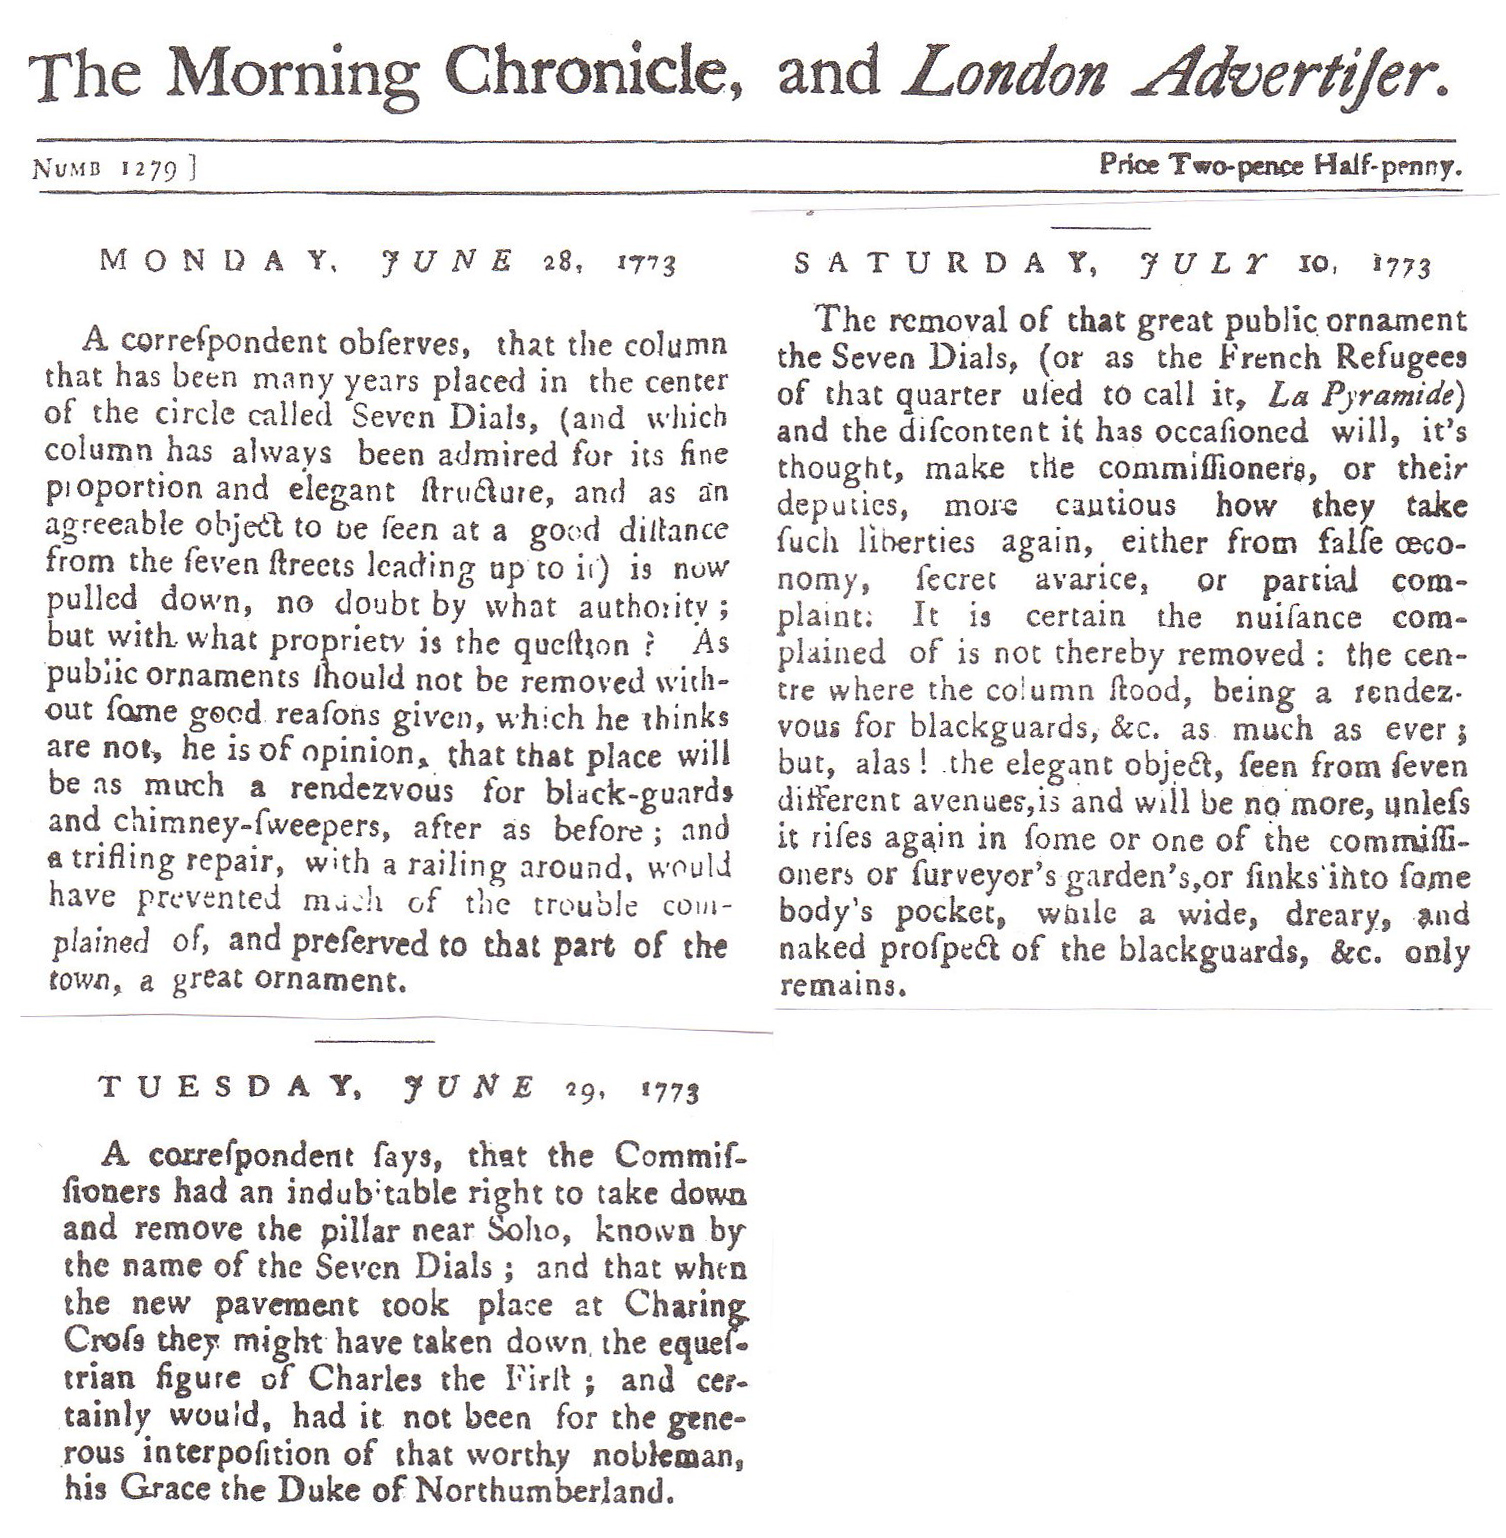 1773 – The Morning Chronicle and London Advertiser: Removal of the Sun Dial Column.